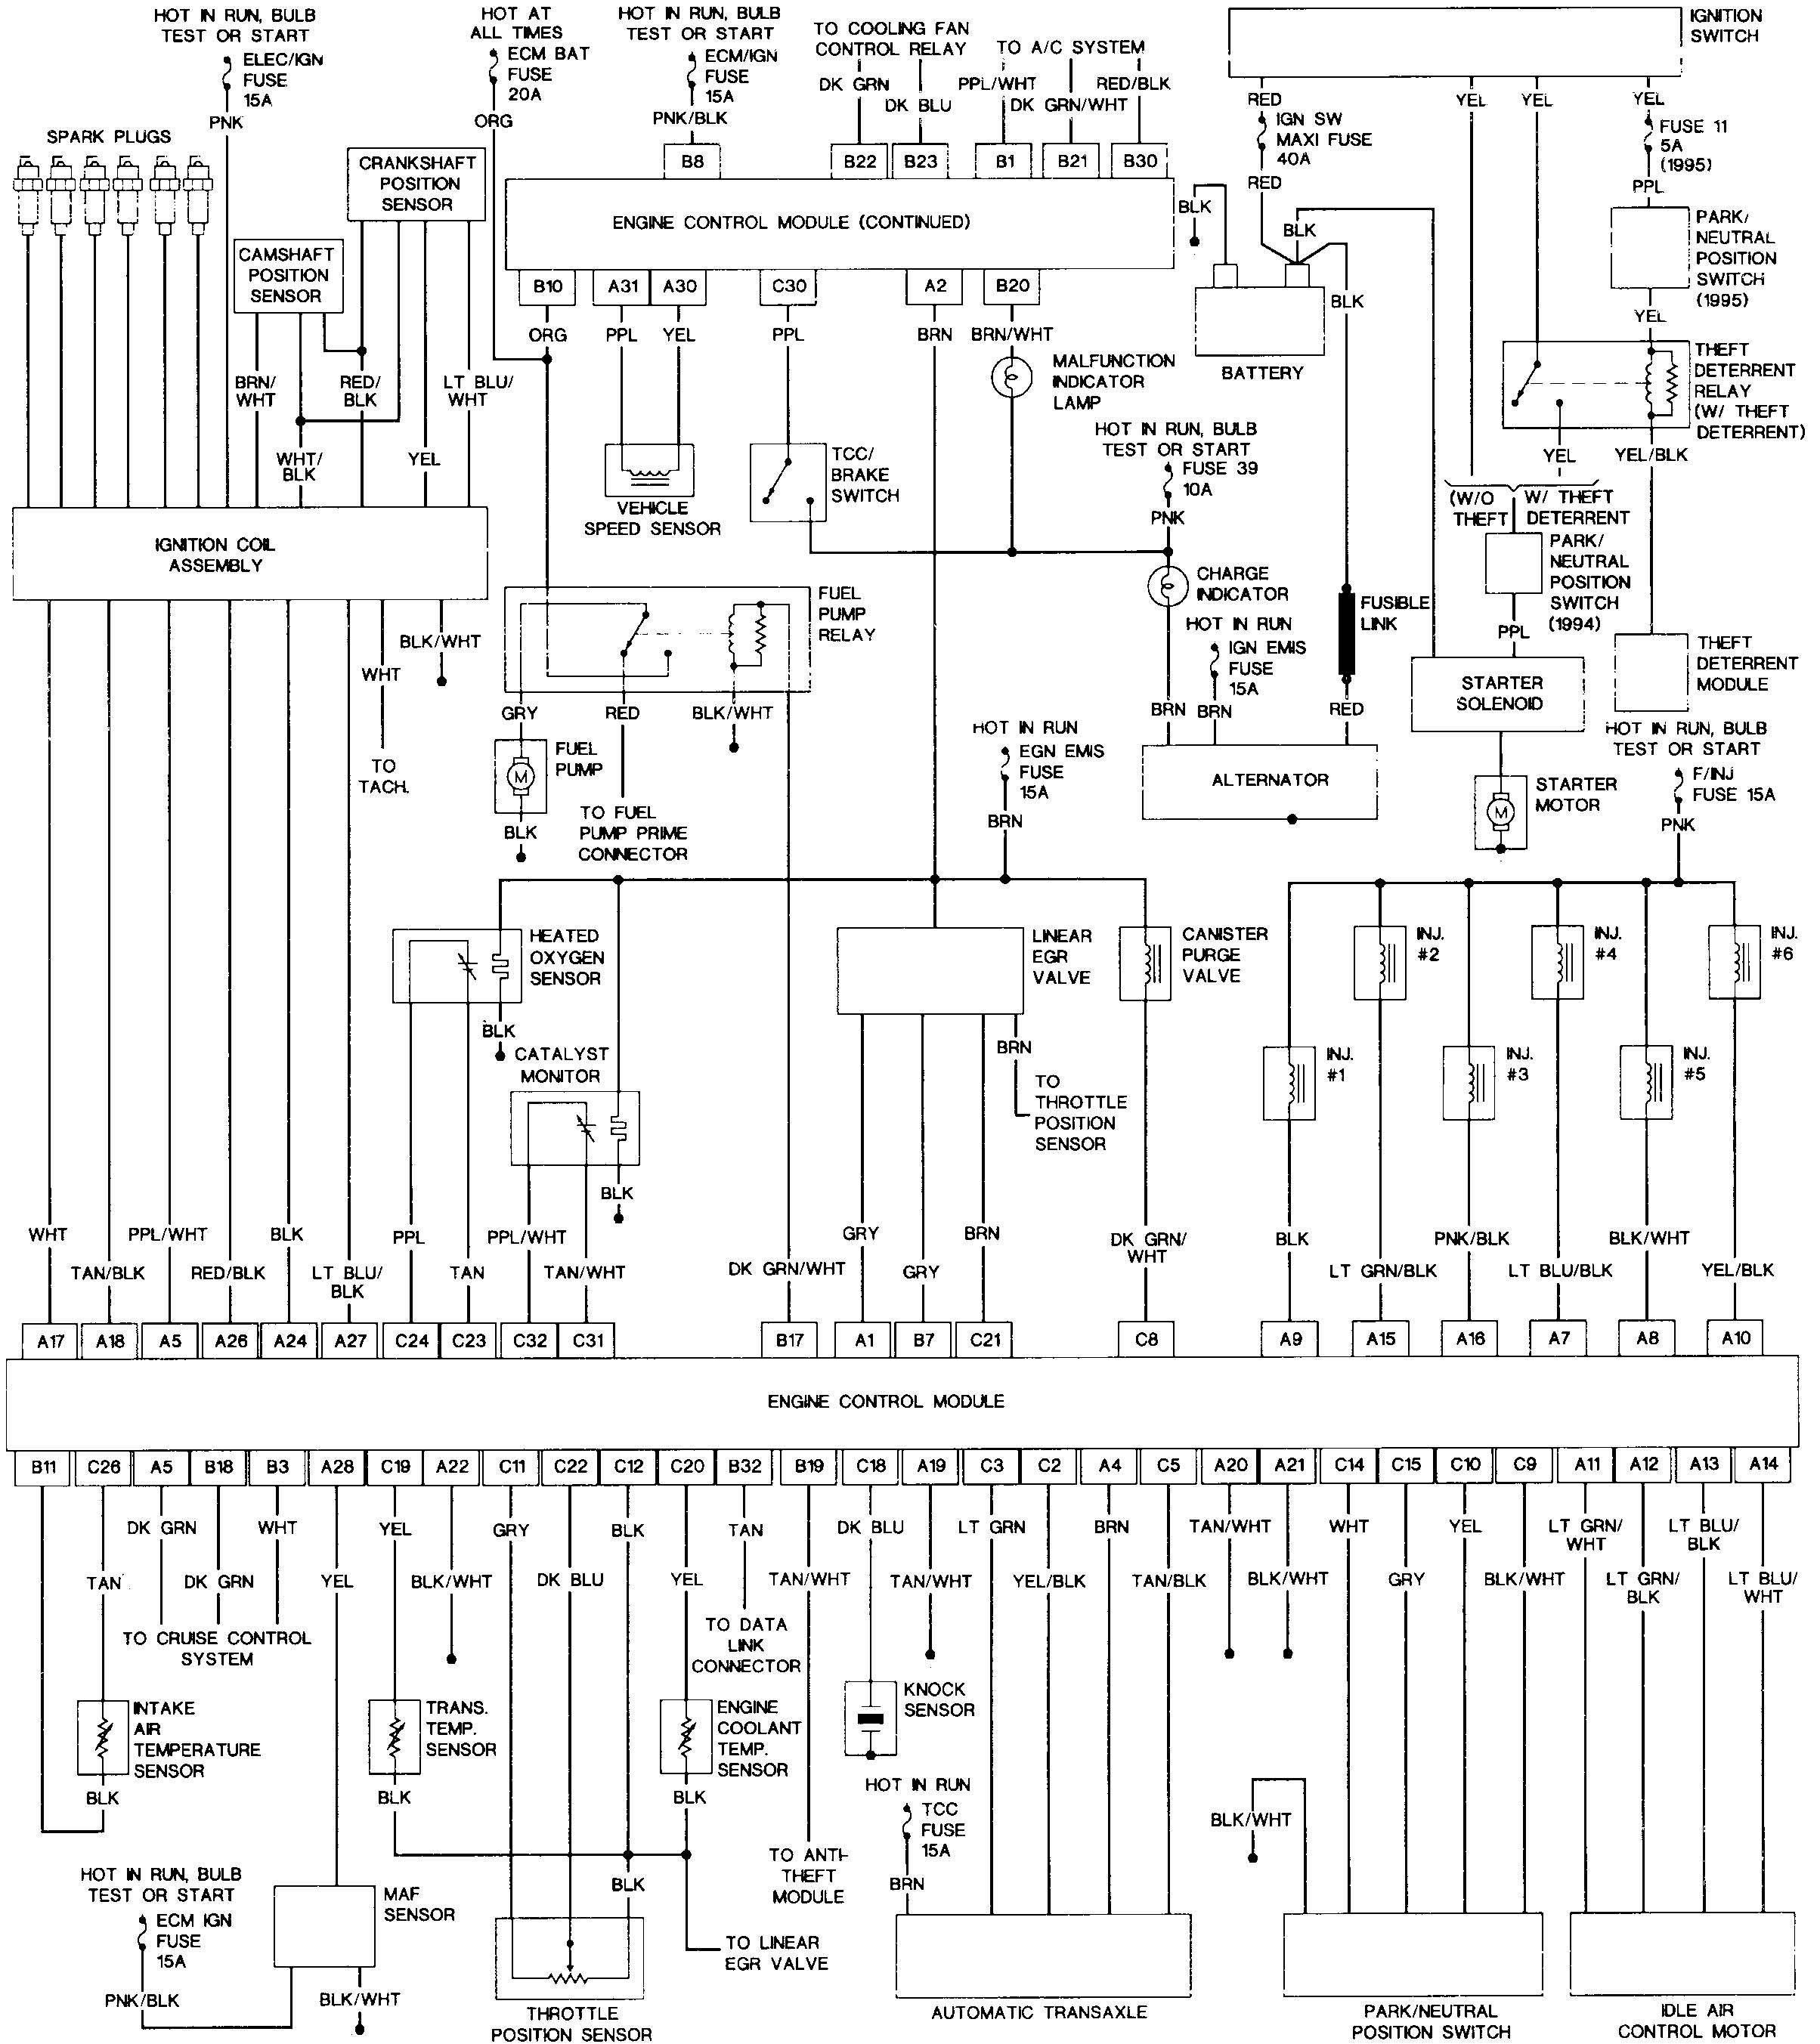 2002 Jeep Grand Cherokee Engine Diagram 2 Unique 2004 Jeep Grand Cherokee Cooling Fan Wiring Diagram Of 2002 Jeep Grand Cherokee Engine Diagram 2 Wiring Diagram Jeep Grand Cherokee Laredo Fresh Jeep Cherokee Pcm